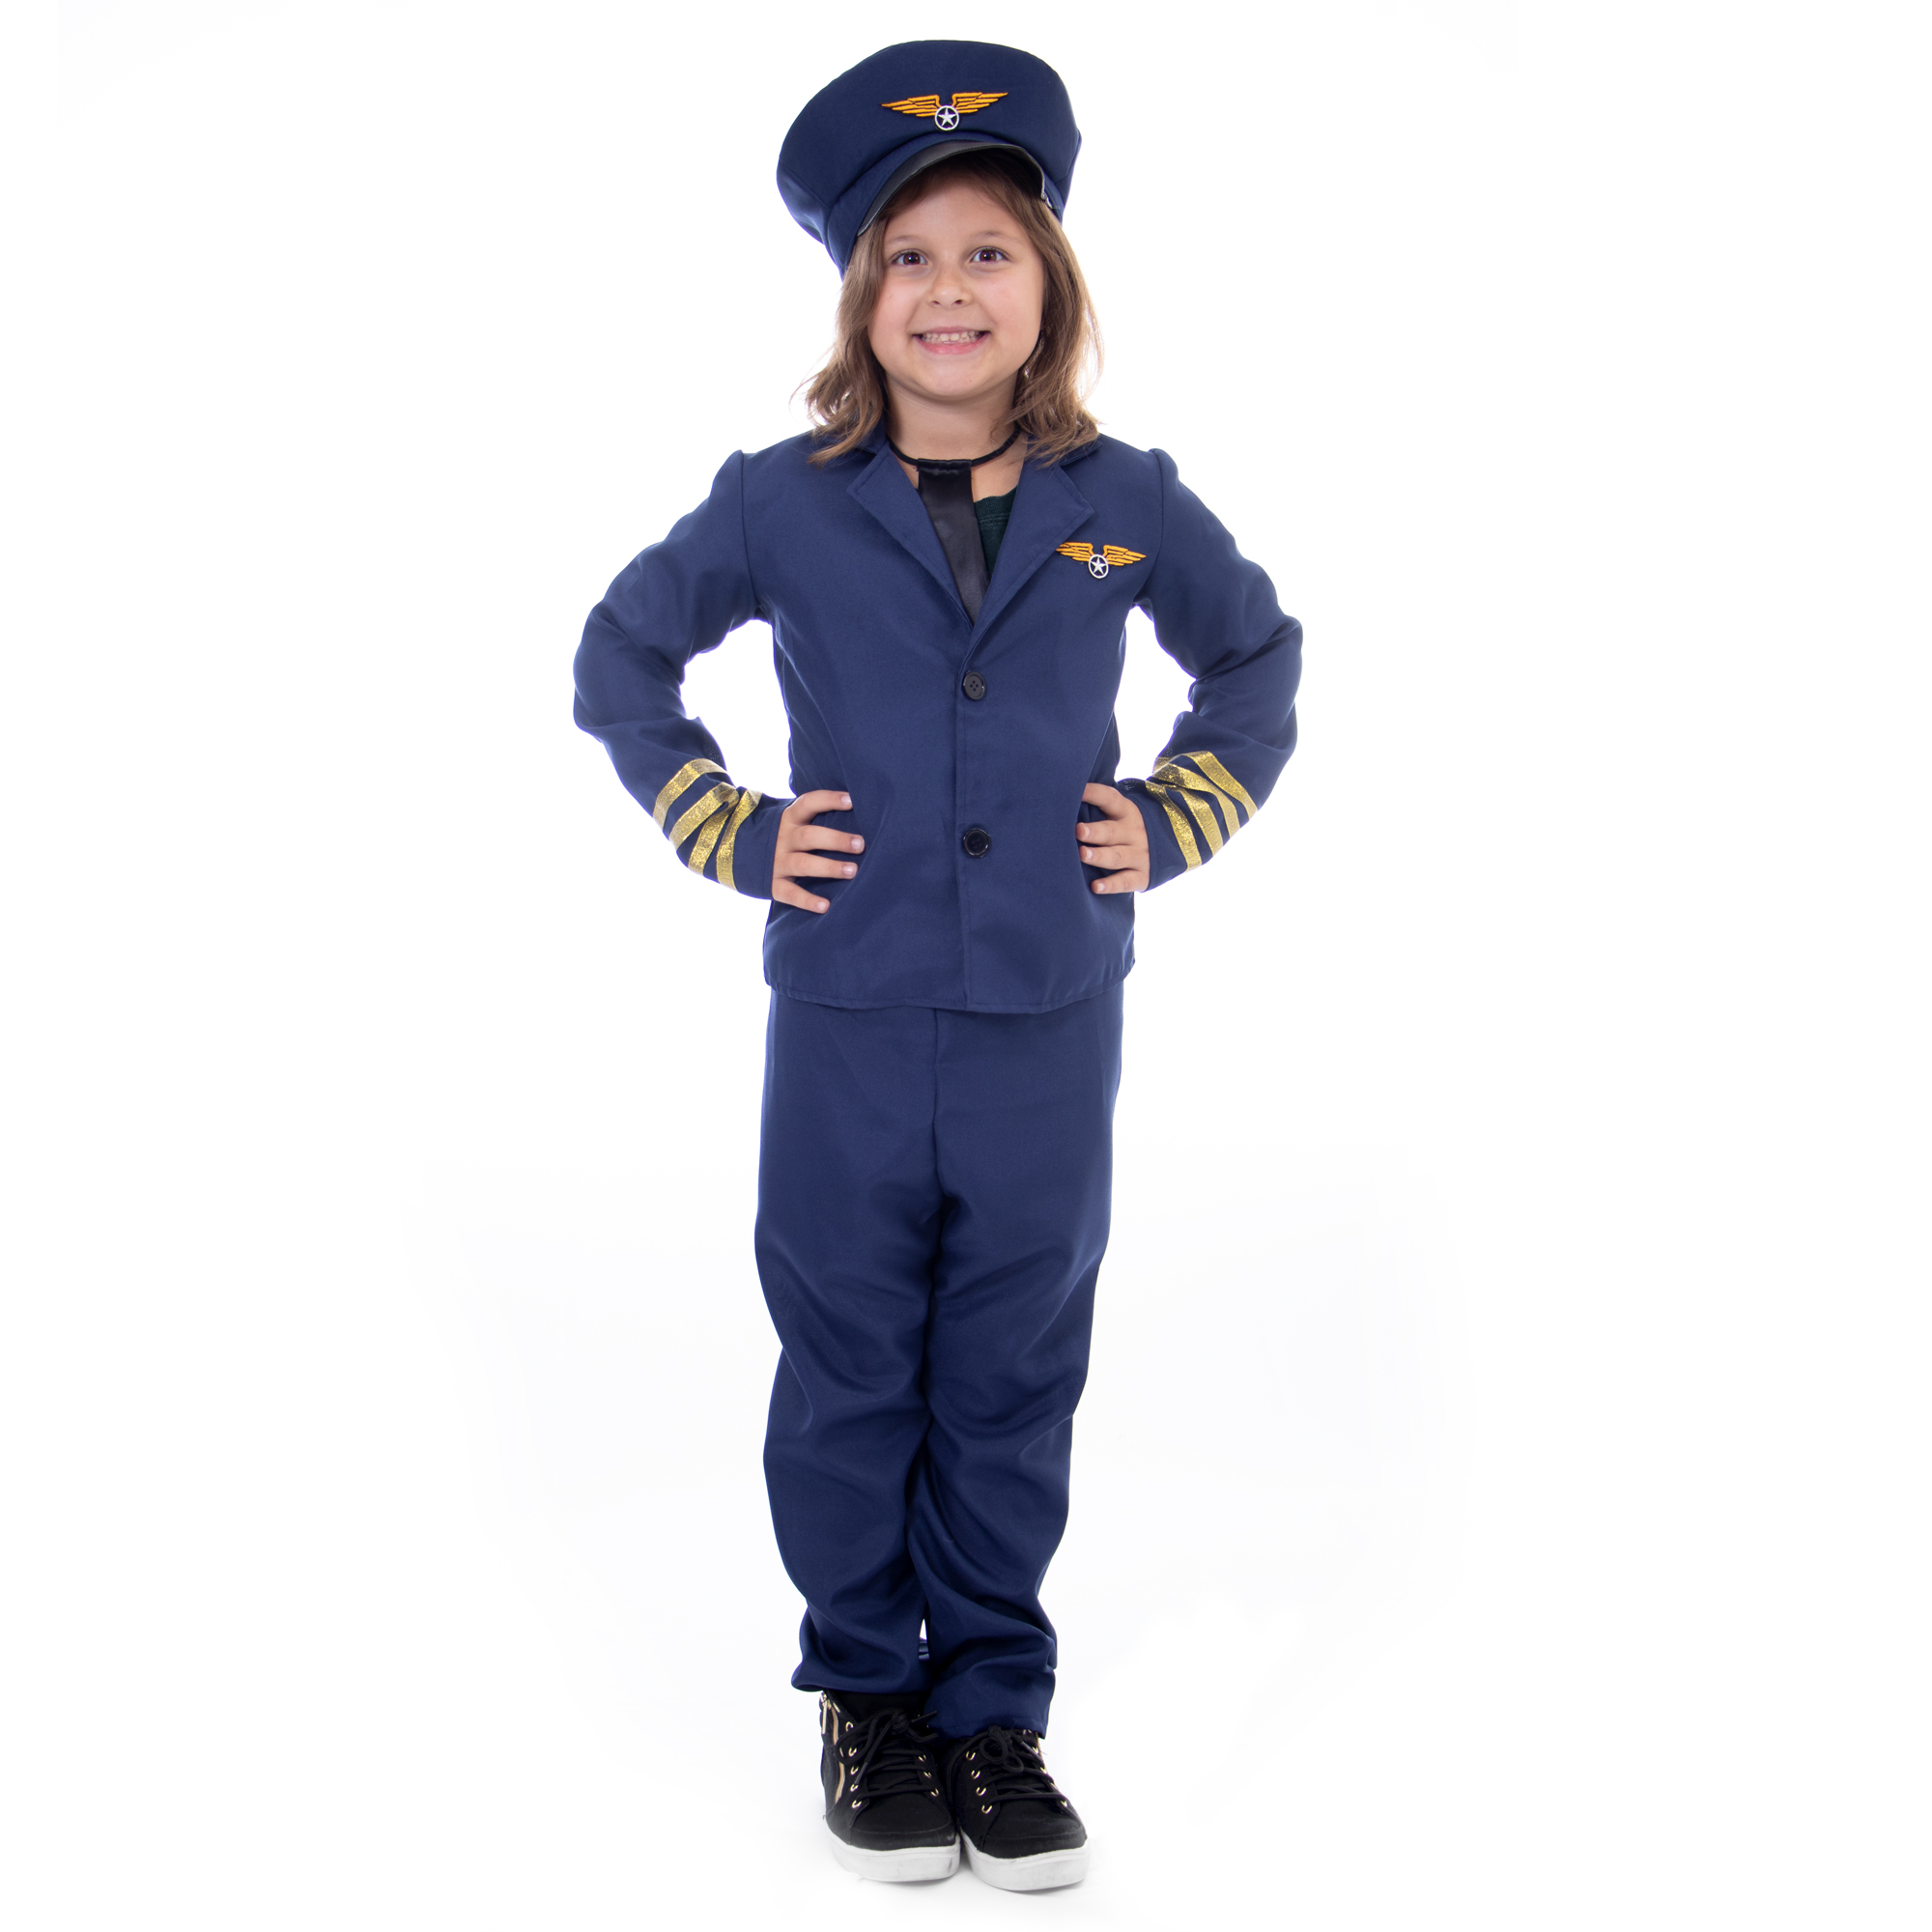 Airline Pilot Halloween Costume - Kids Unisex, Large